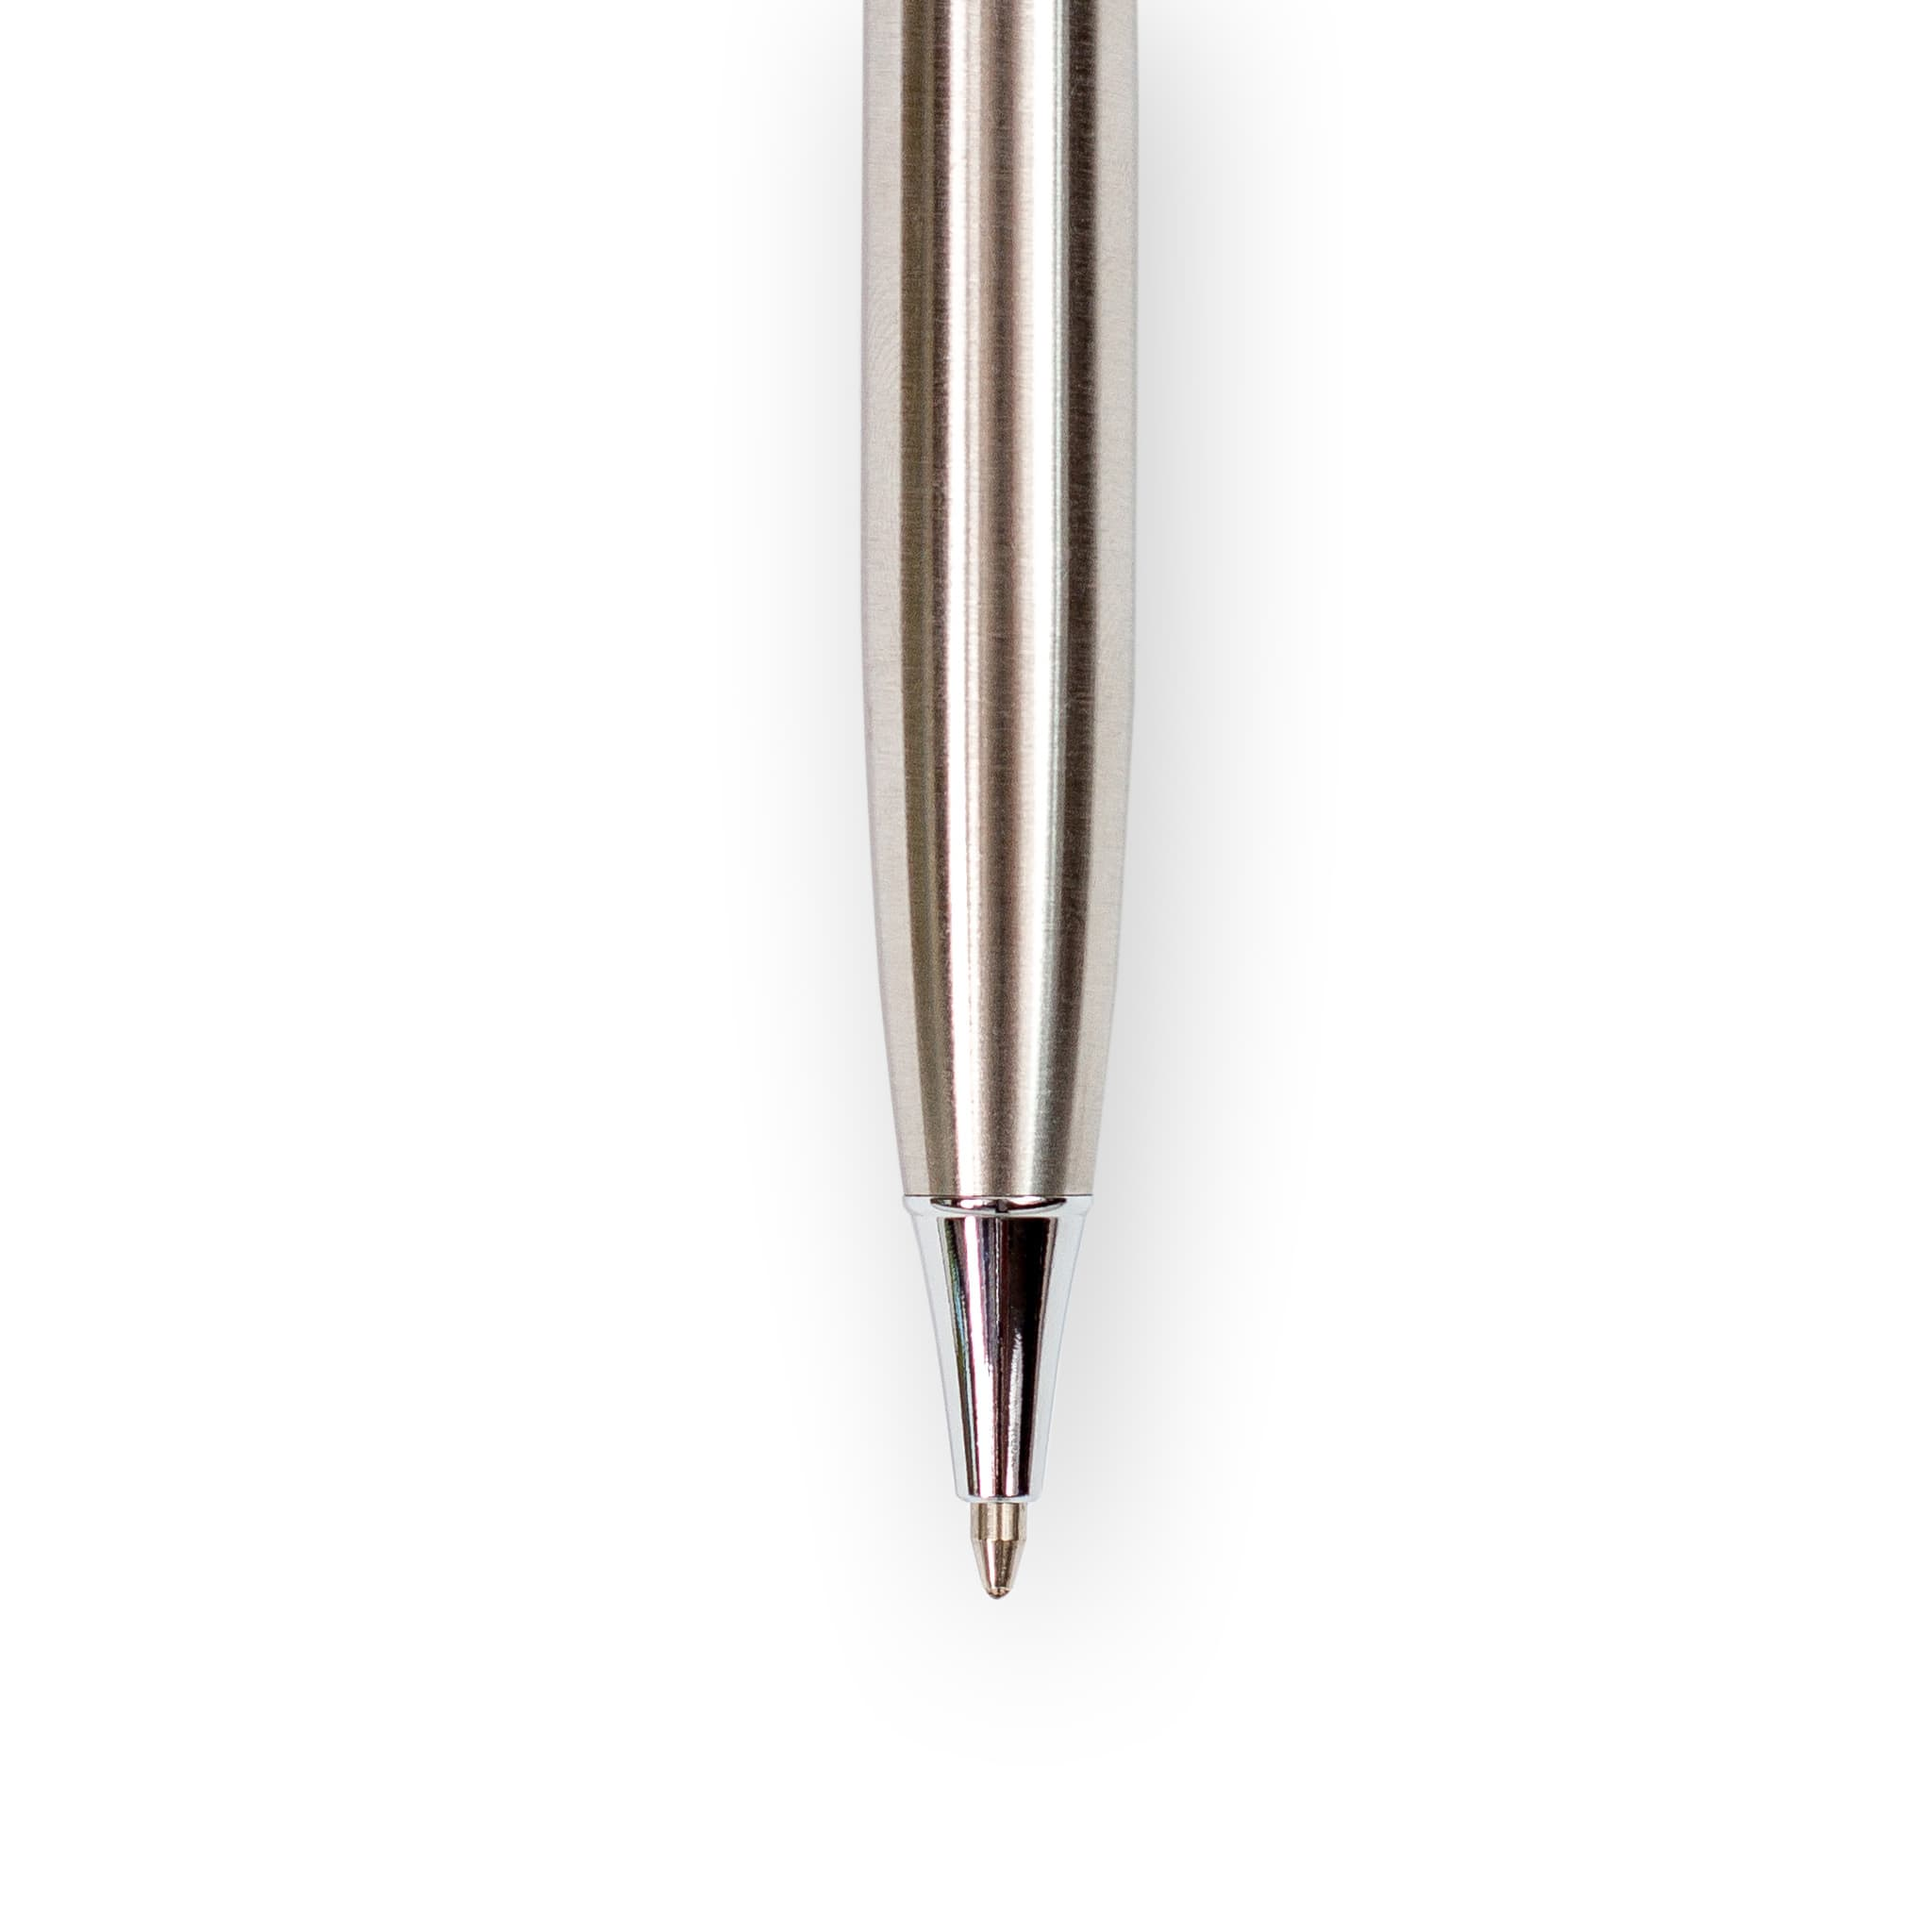 Executive Edition Luxury Pen - Platinum Silver - Free Shipping